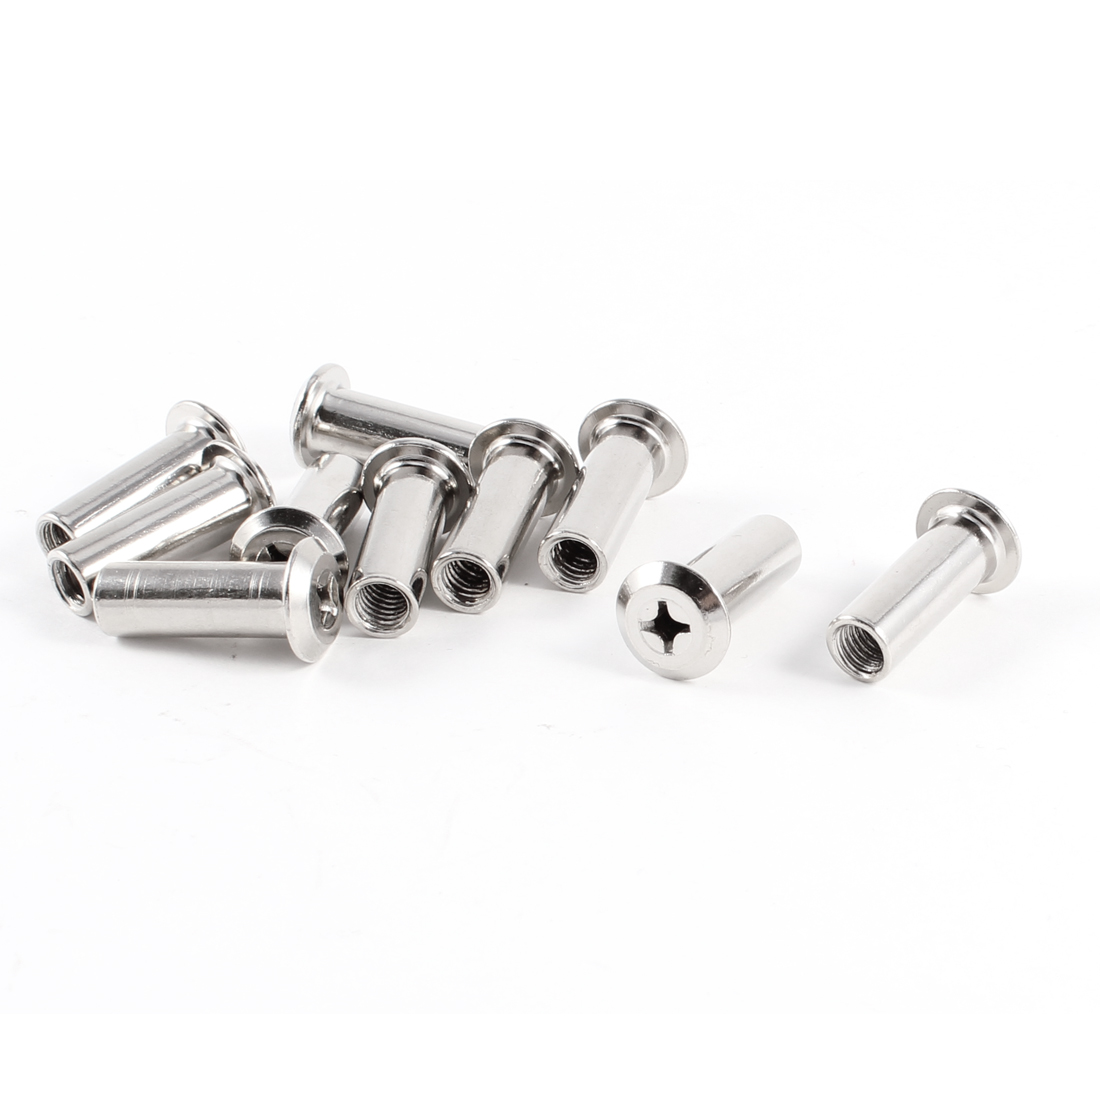 Furniture Silver Tone Metal Thread Support Nut Inserts 10 Pcs